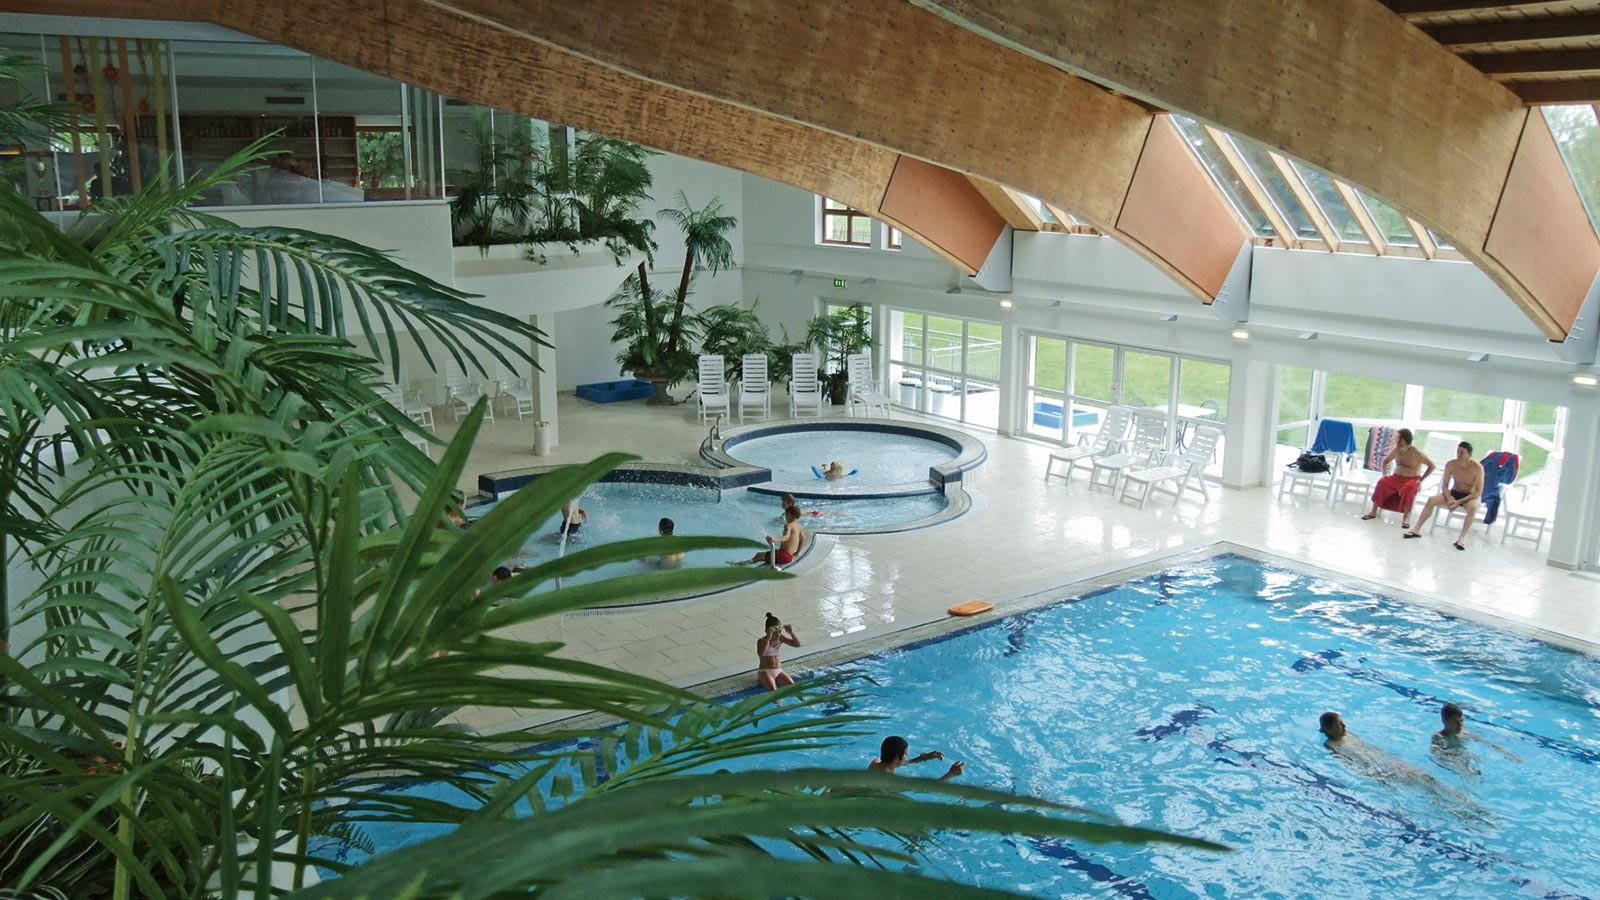 View from above at the swimming pools in the indoor pool Alpinpool in Maranza with guests in the water